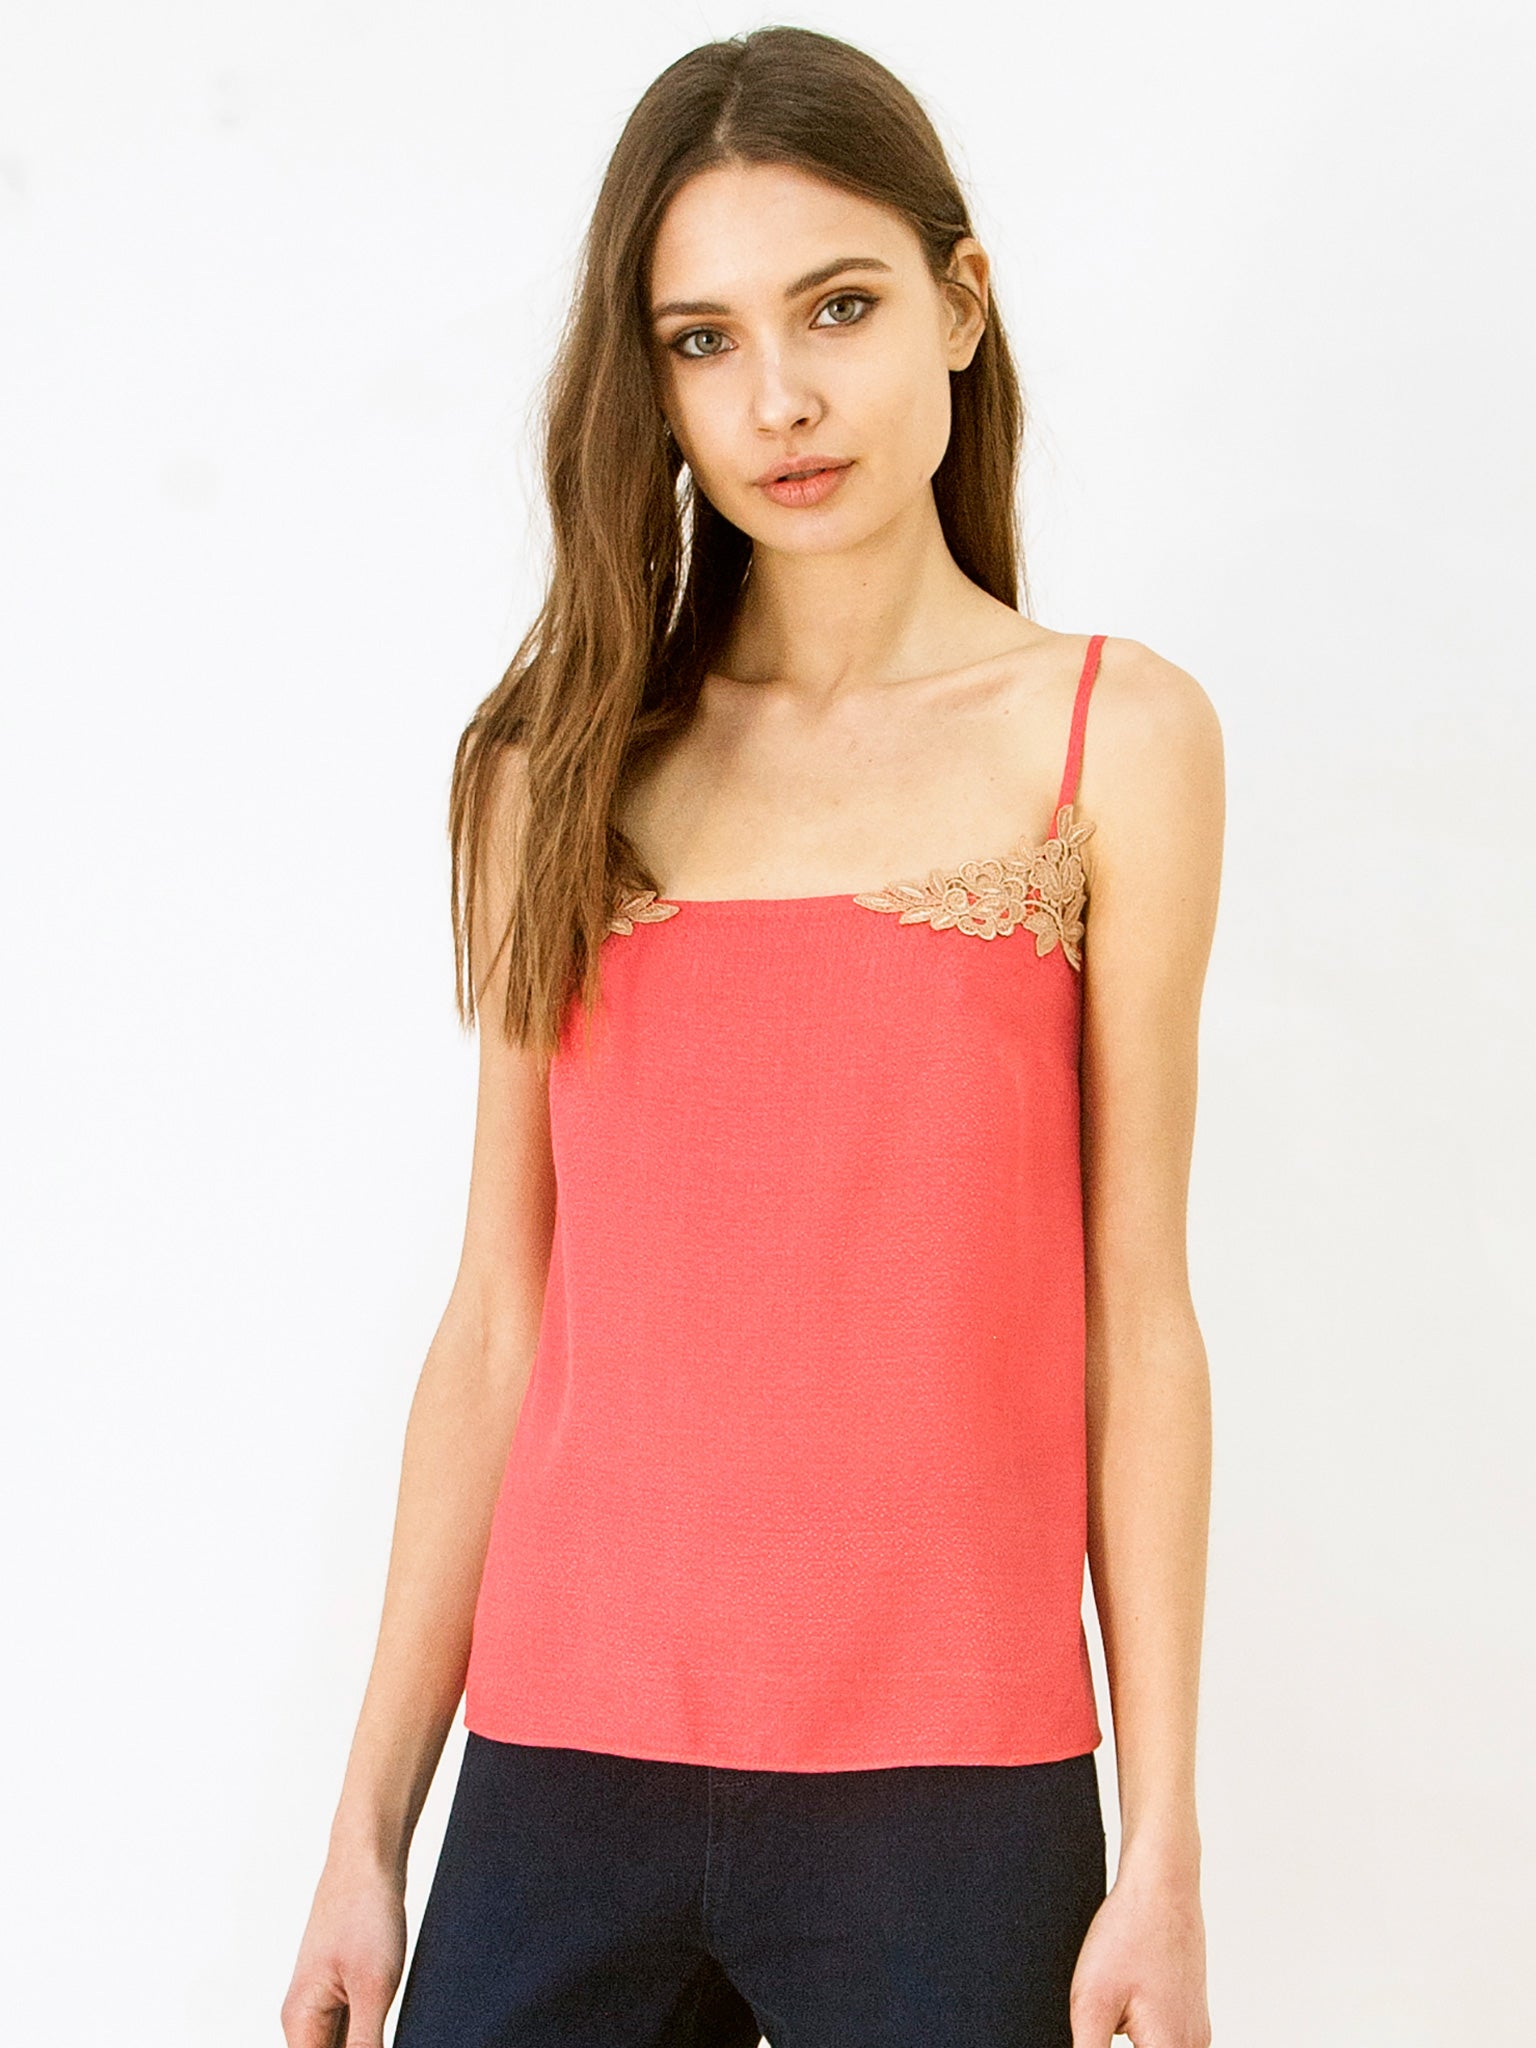 Watermelon Silk Blend Camisole